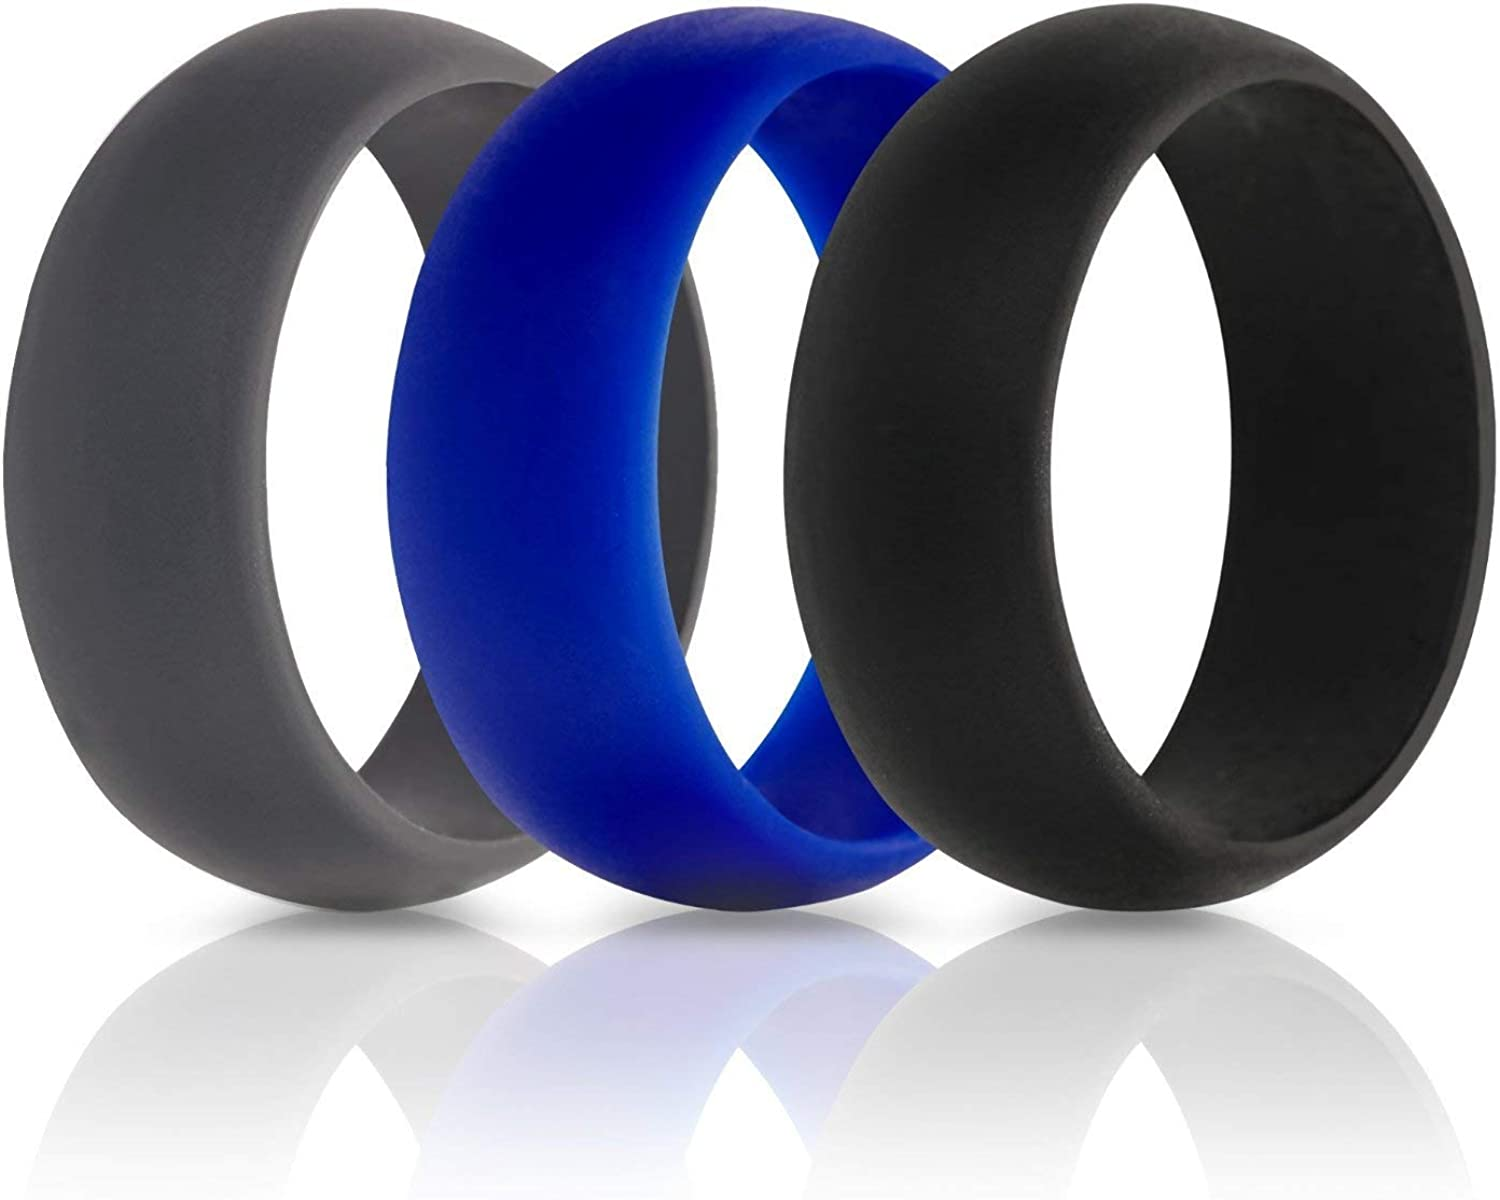 ThunderFit Silicone Wedding Rings for 3 - Wed Men 100% quality warranty! Denver Mall Rubber